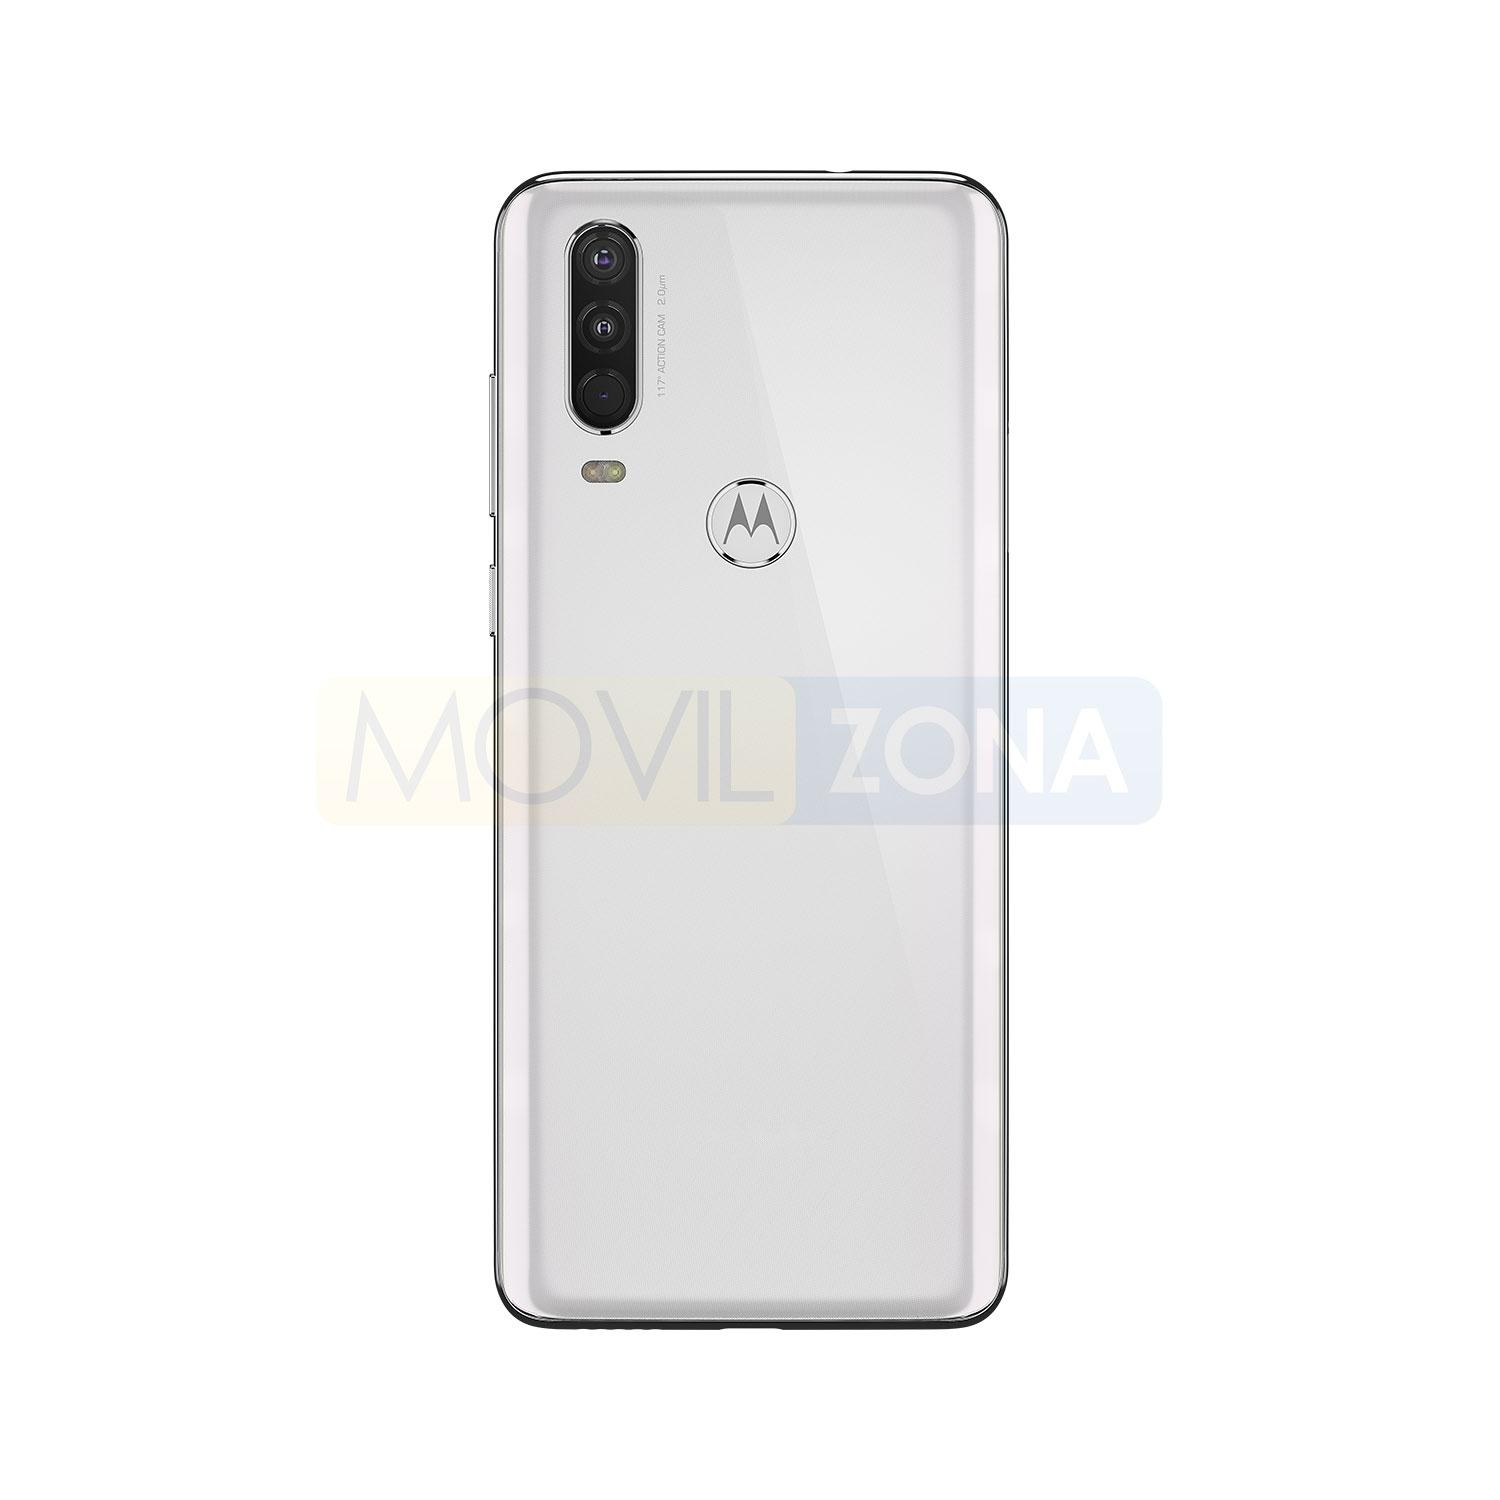 Motorola One Action triple cámara